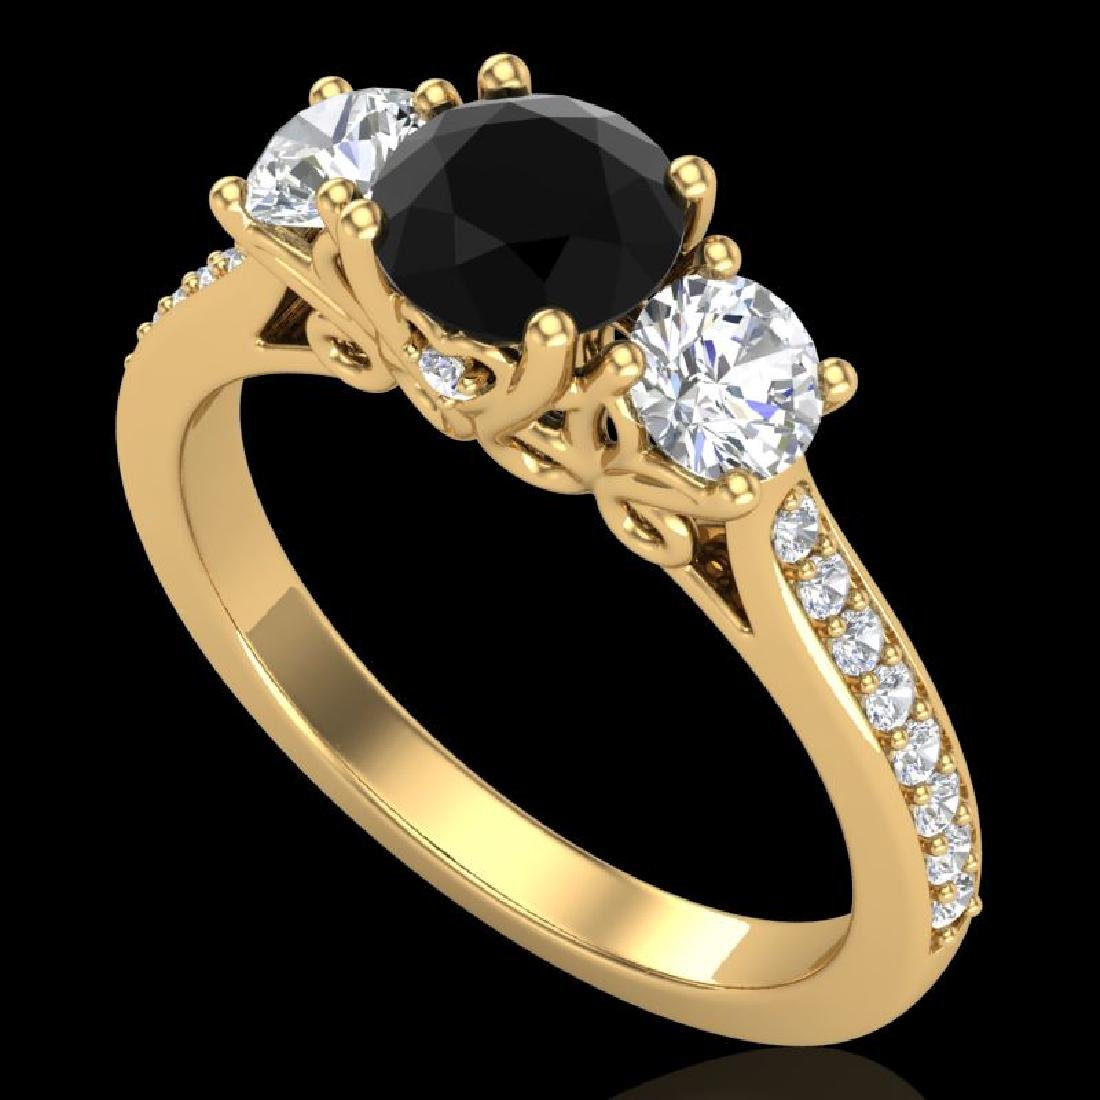 1.67 CTW Fancy Black Diamond Solitaire Art Deco 3 Stone